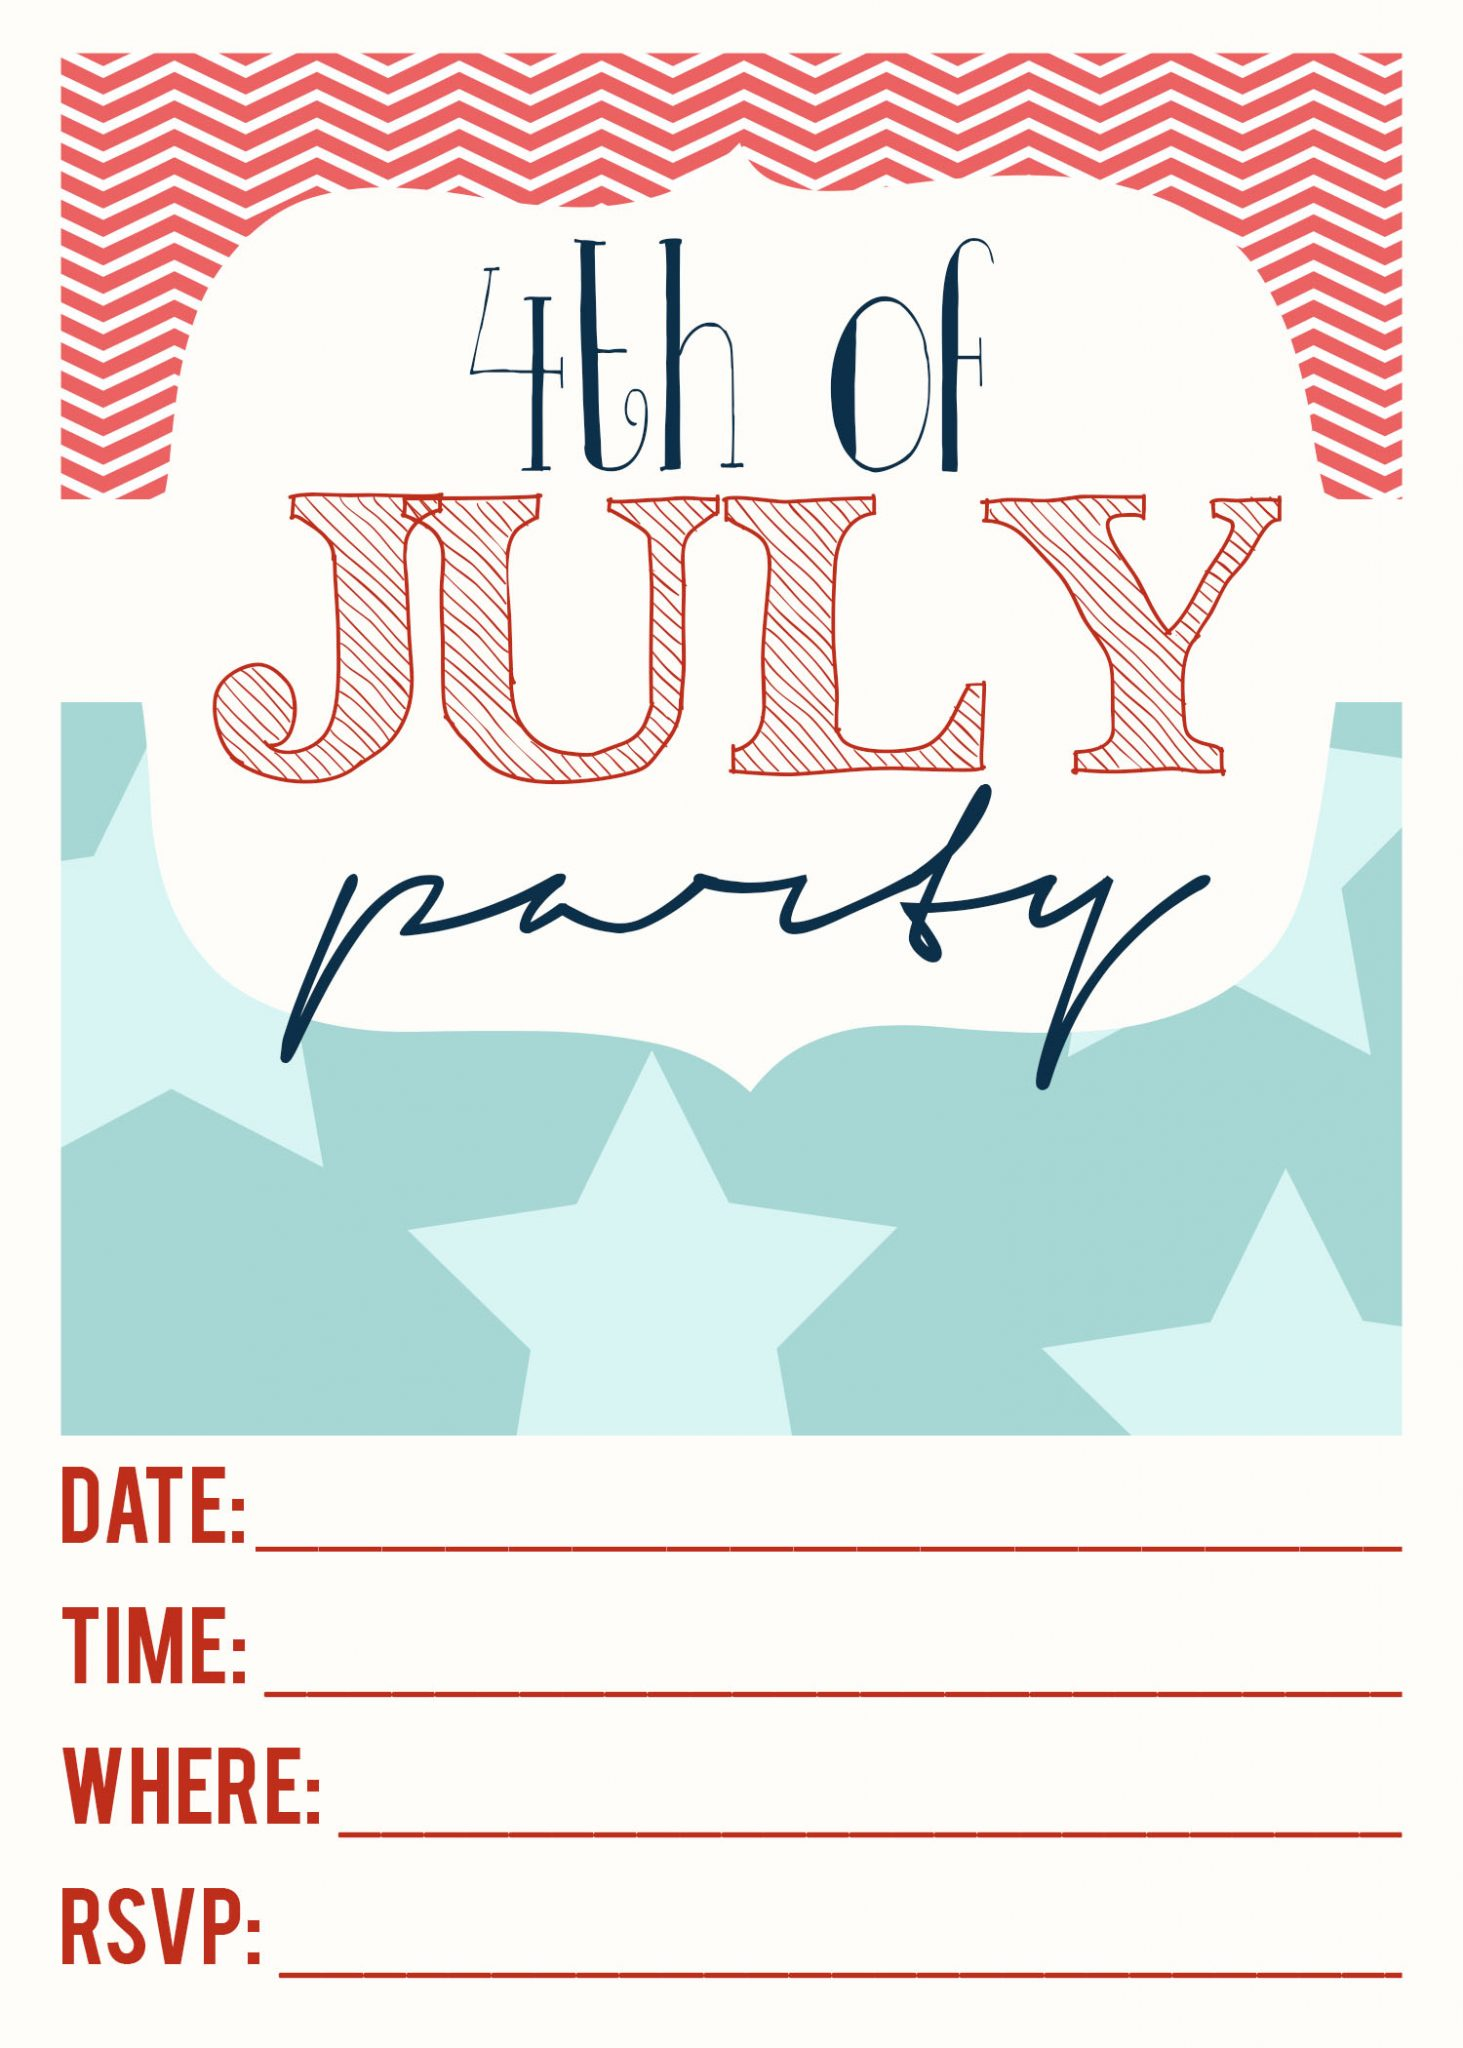 Fifth of july script pdf